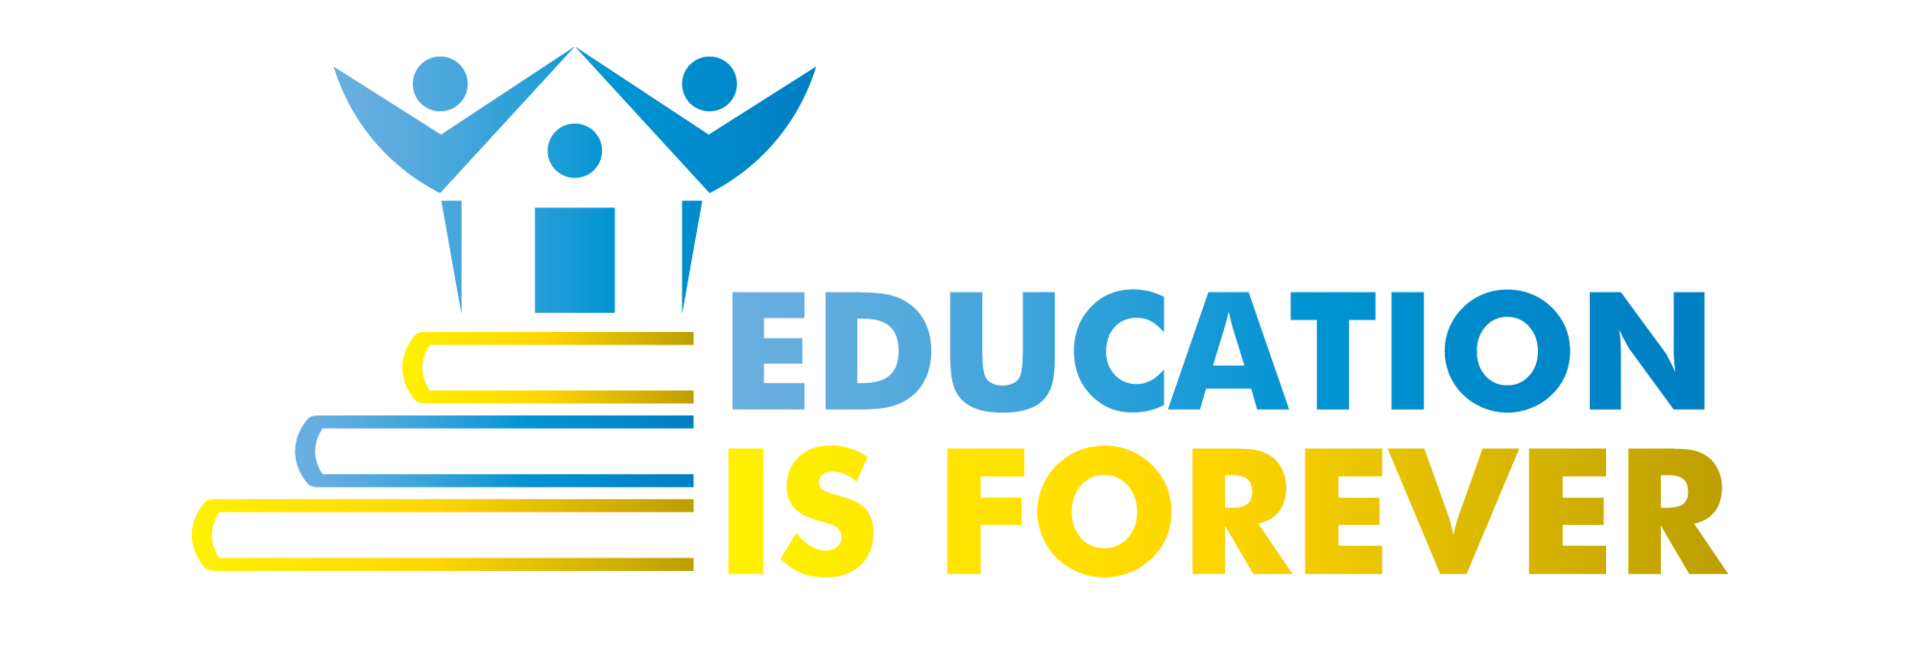 Education Is Forever logo